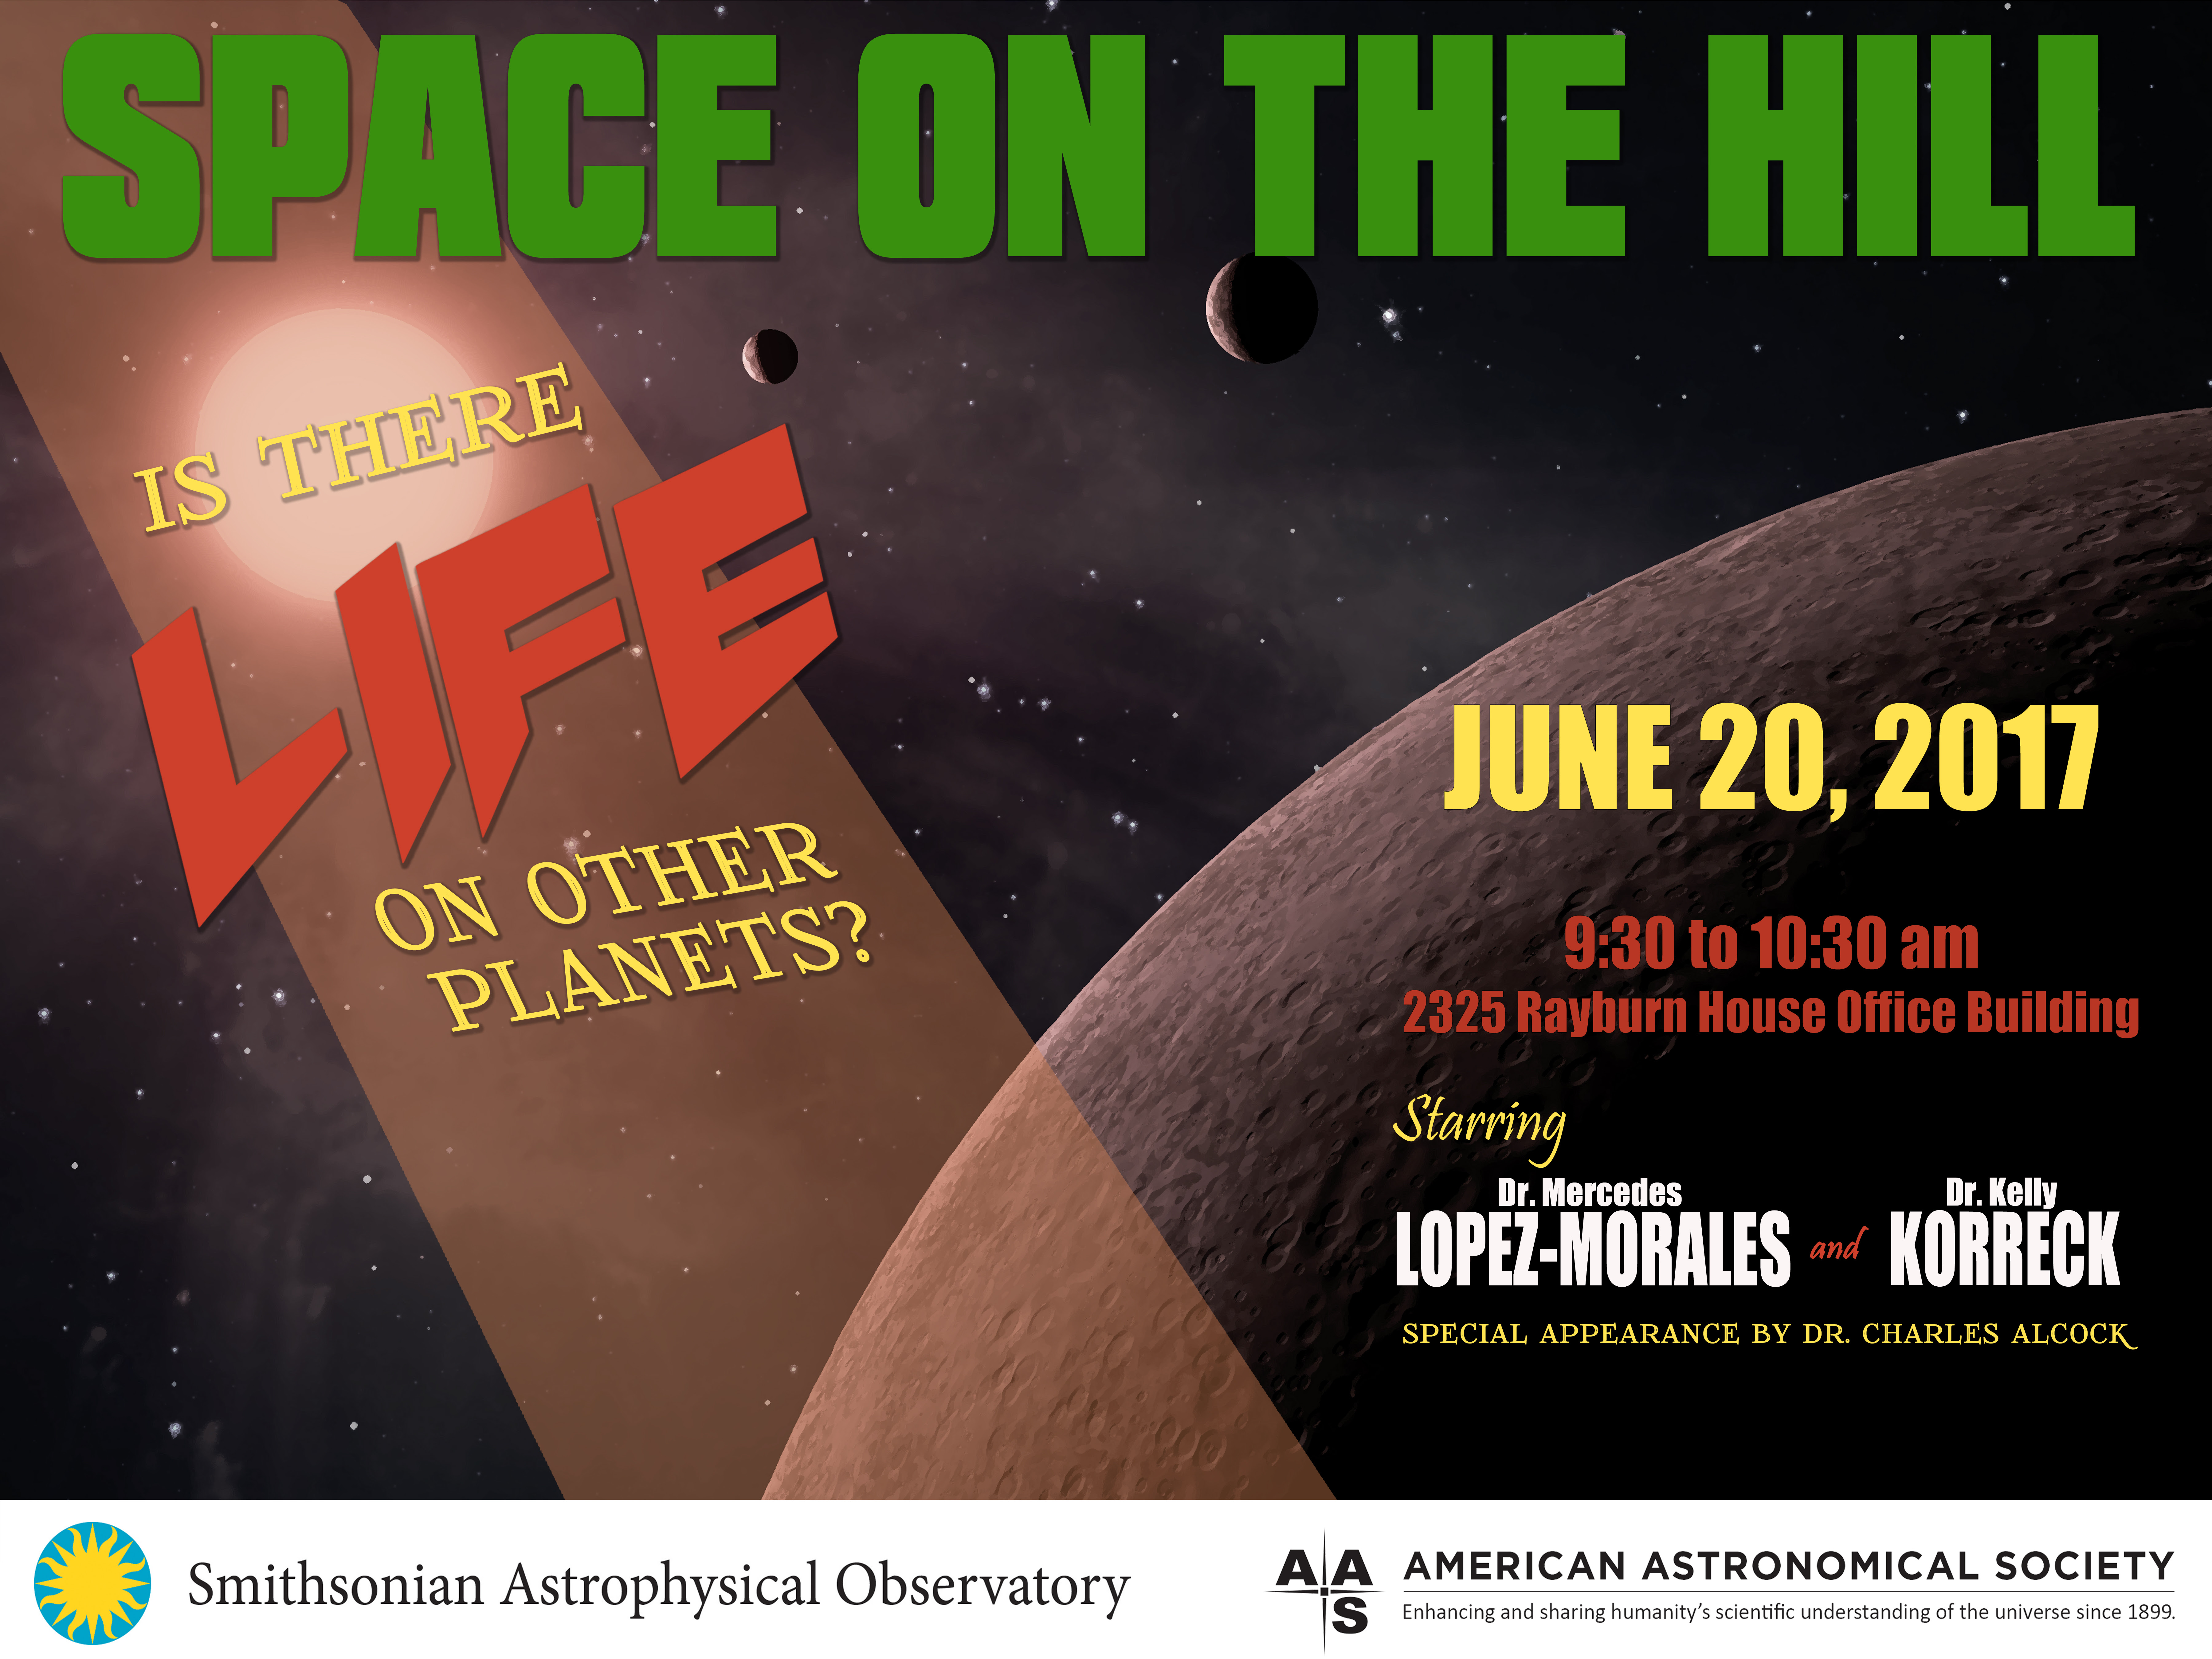 Space on the Hill RSVP